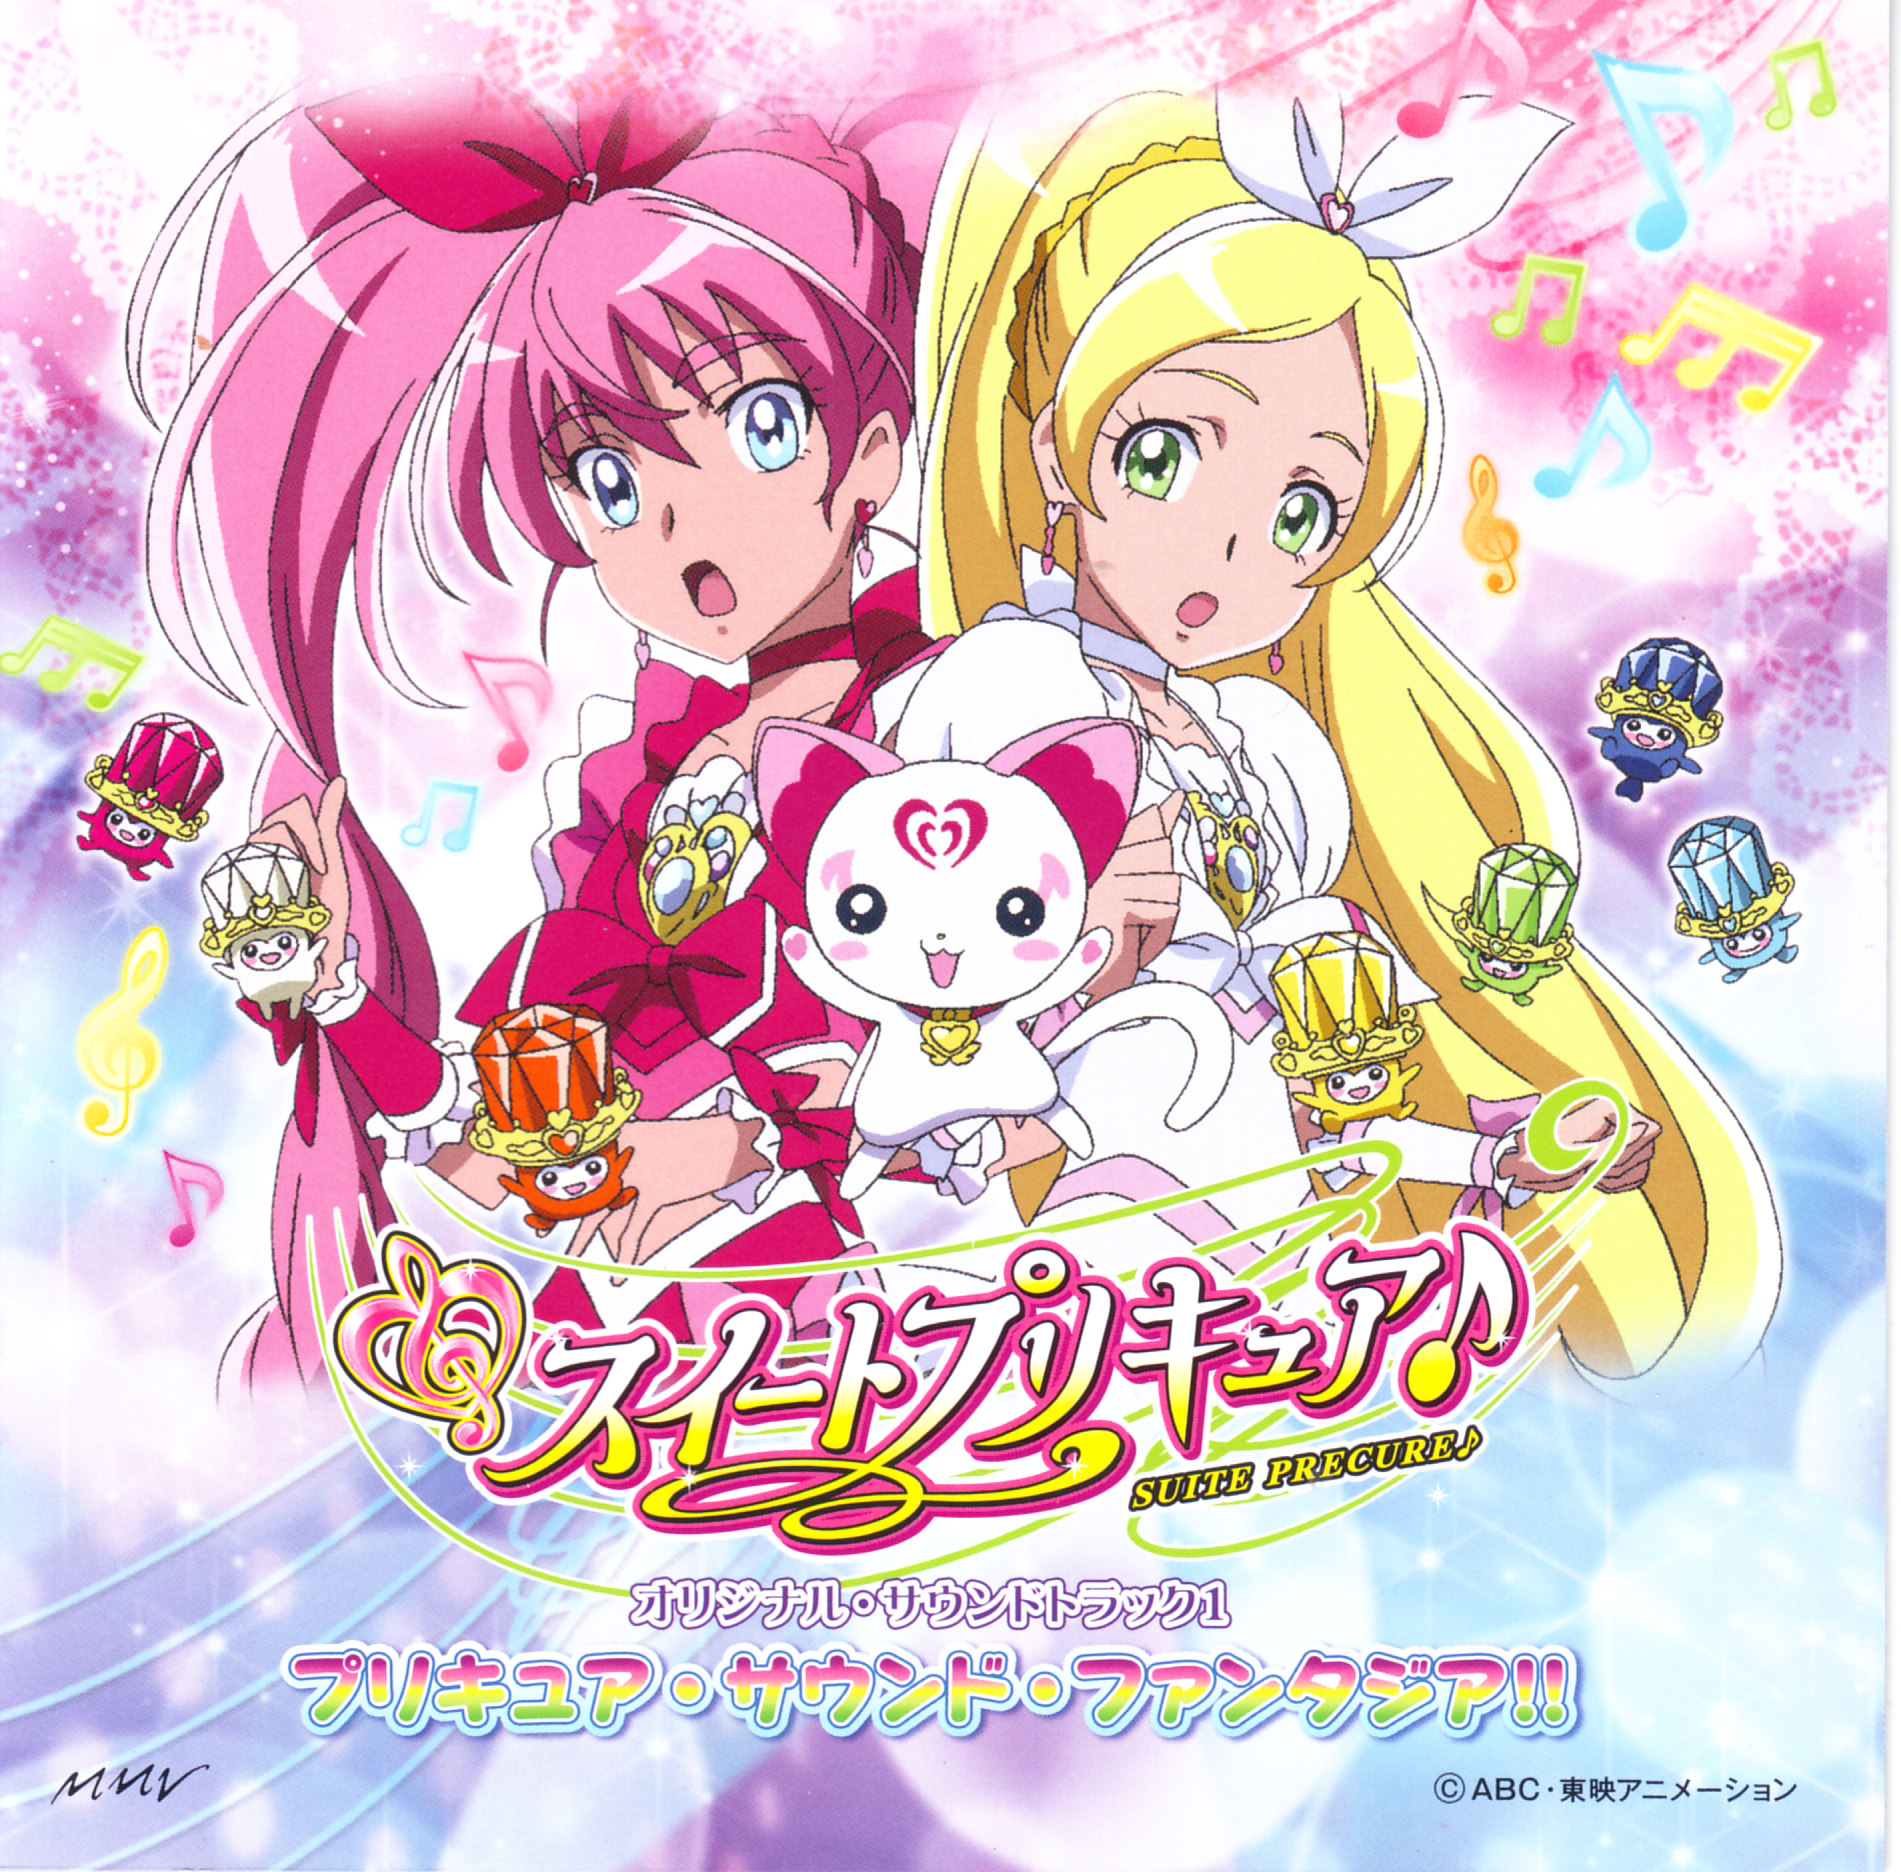 Suite Precure! OST 1 – Pretty Cure! Sound Fantasia!